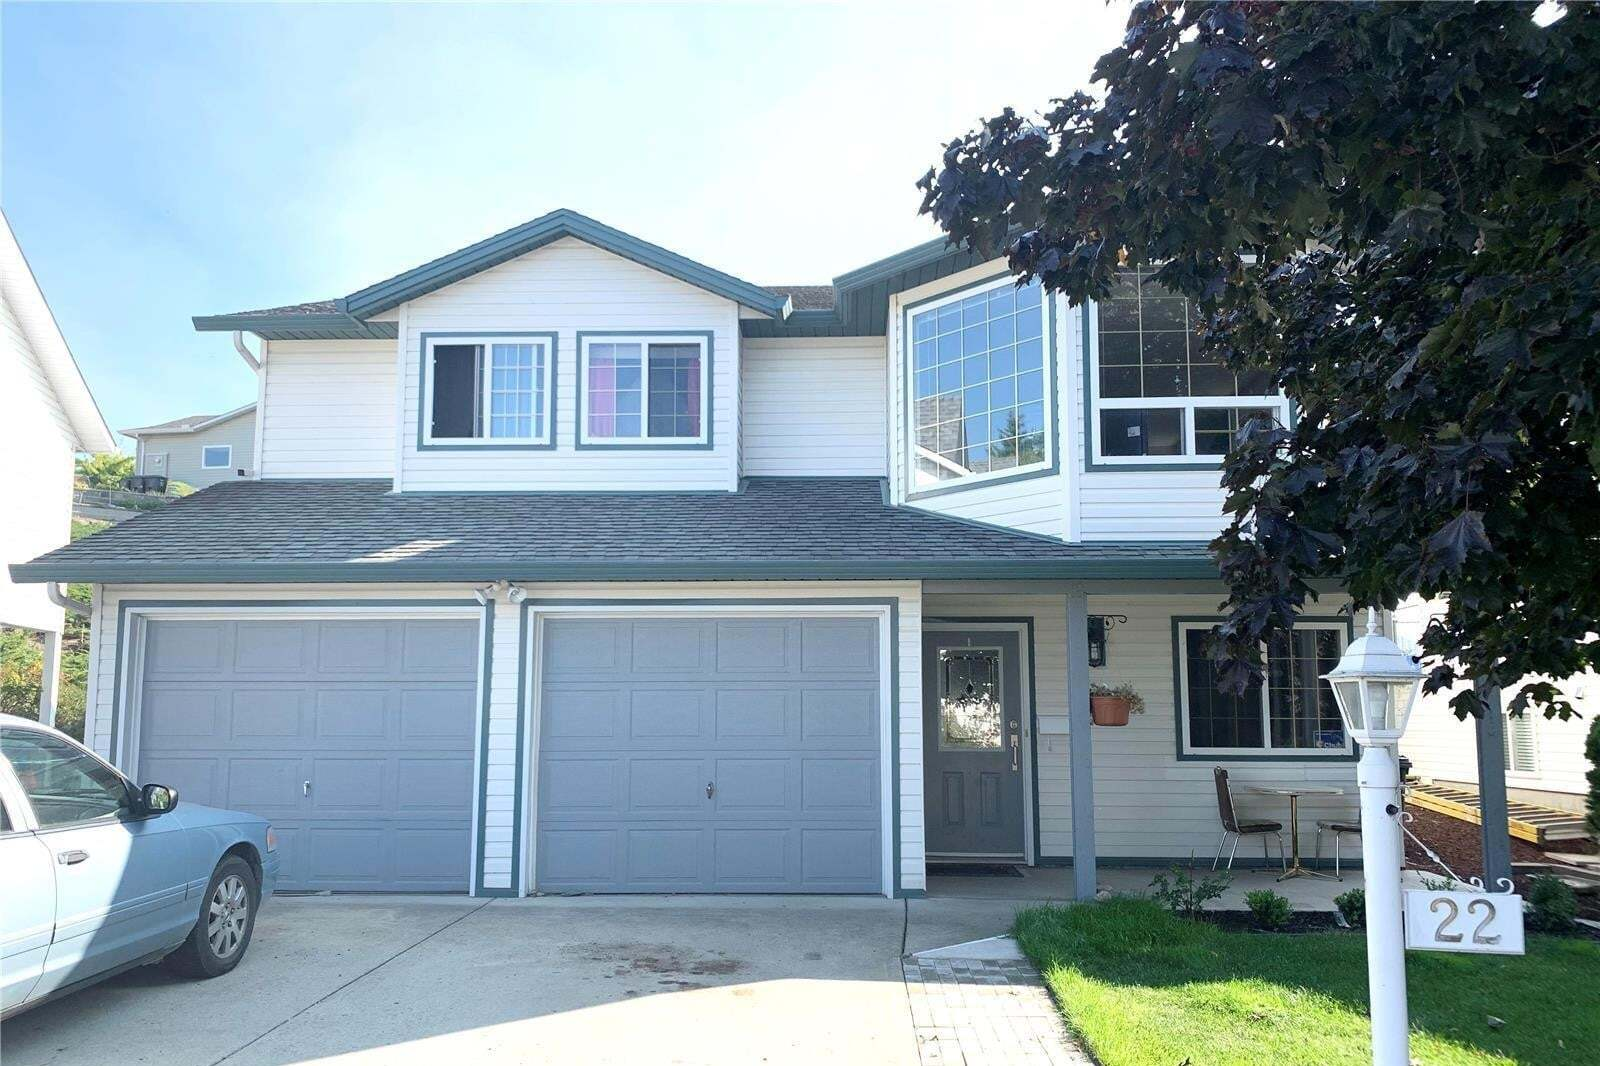 House for sale at 6100 Old Vernon Rd Unit 22 Kelowna British Columbia - MLS: 10217711